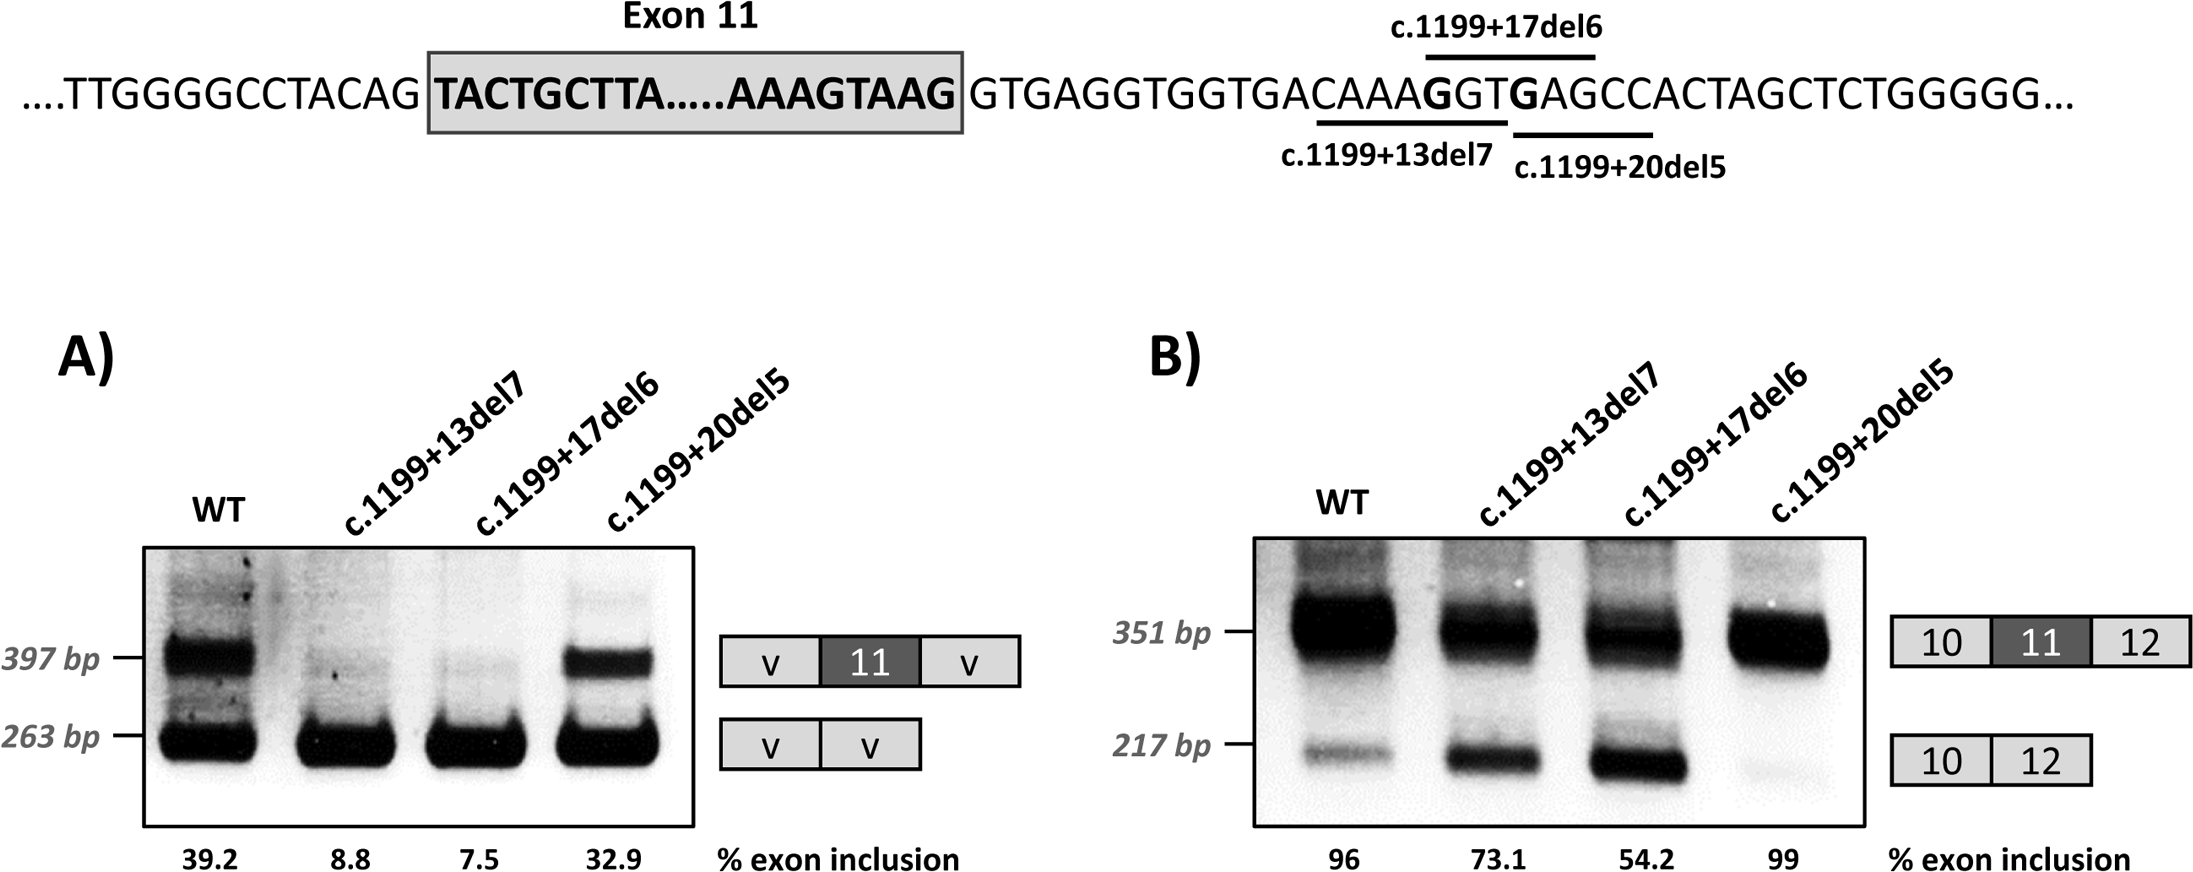 Effect of intronic deletions on minigenes splicing profile.